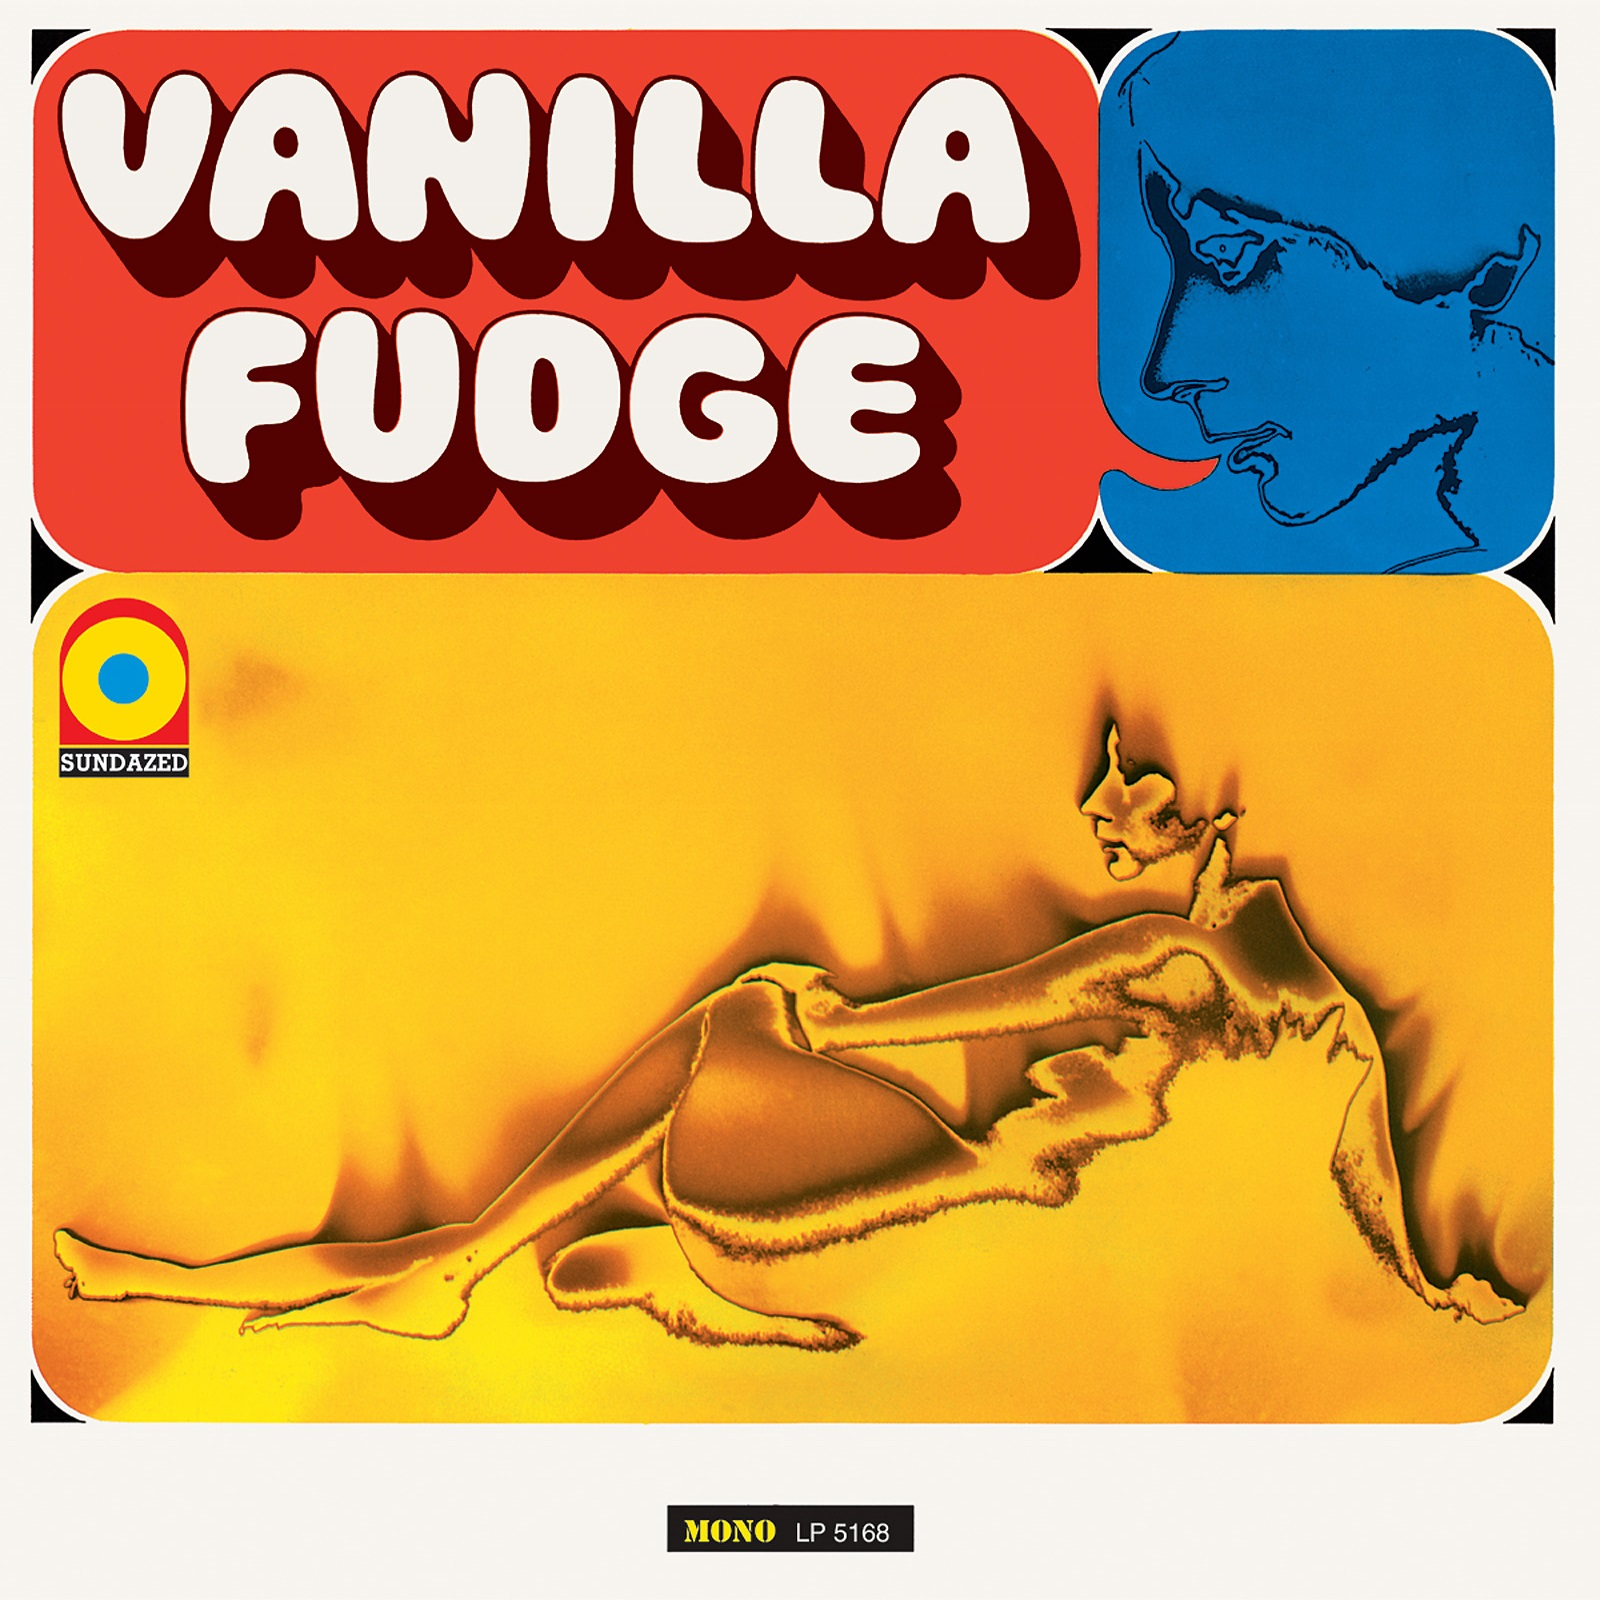 Vanilla Fudge - Vanilla Fudge MONO Edition LP